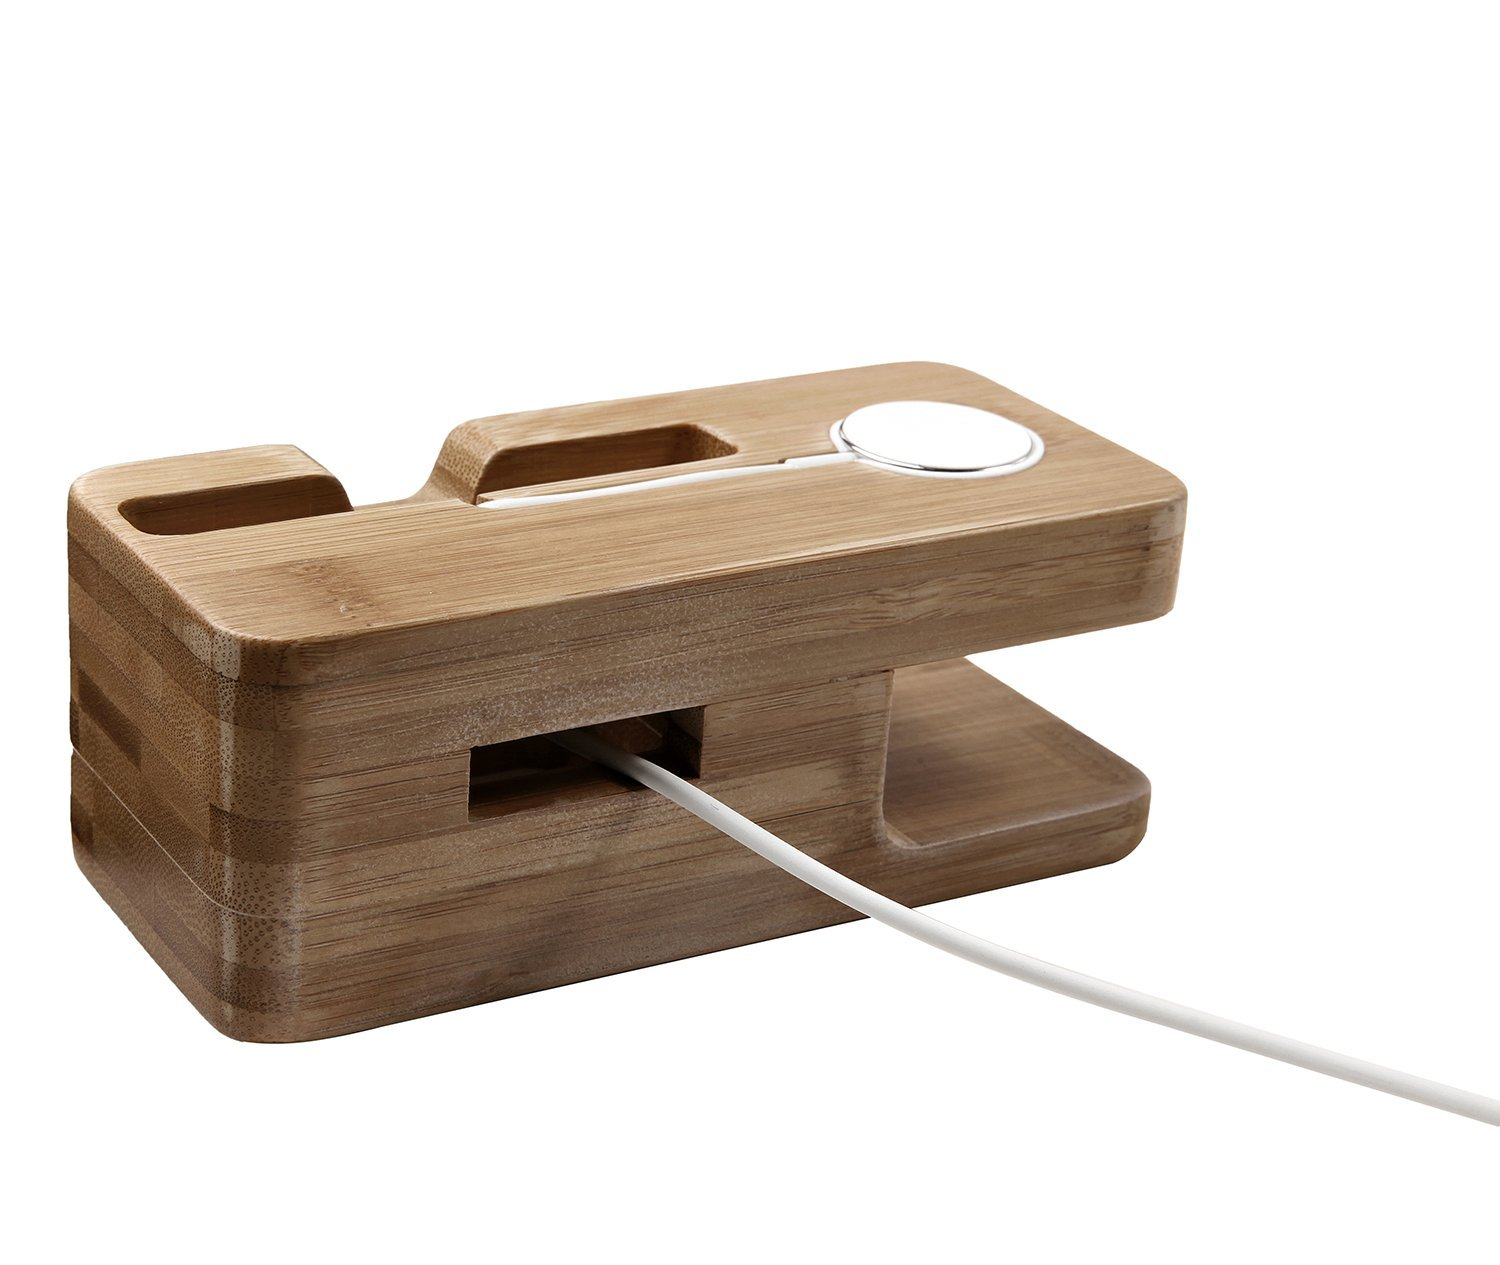 Apple Watch Stand / dock, KuGi High quality Bamboo Wood Charging Stand / holder Bracket Docking Station Stock Cradle Holder For Apple watch 38mm, 42mm and iphone 4 / 5 / 5S / 6 / 7 / 6S / Plus / 5C / 6C. (Stand)